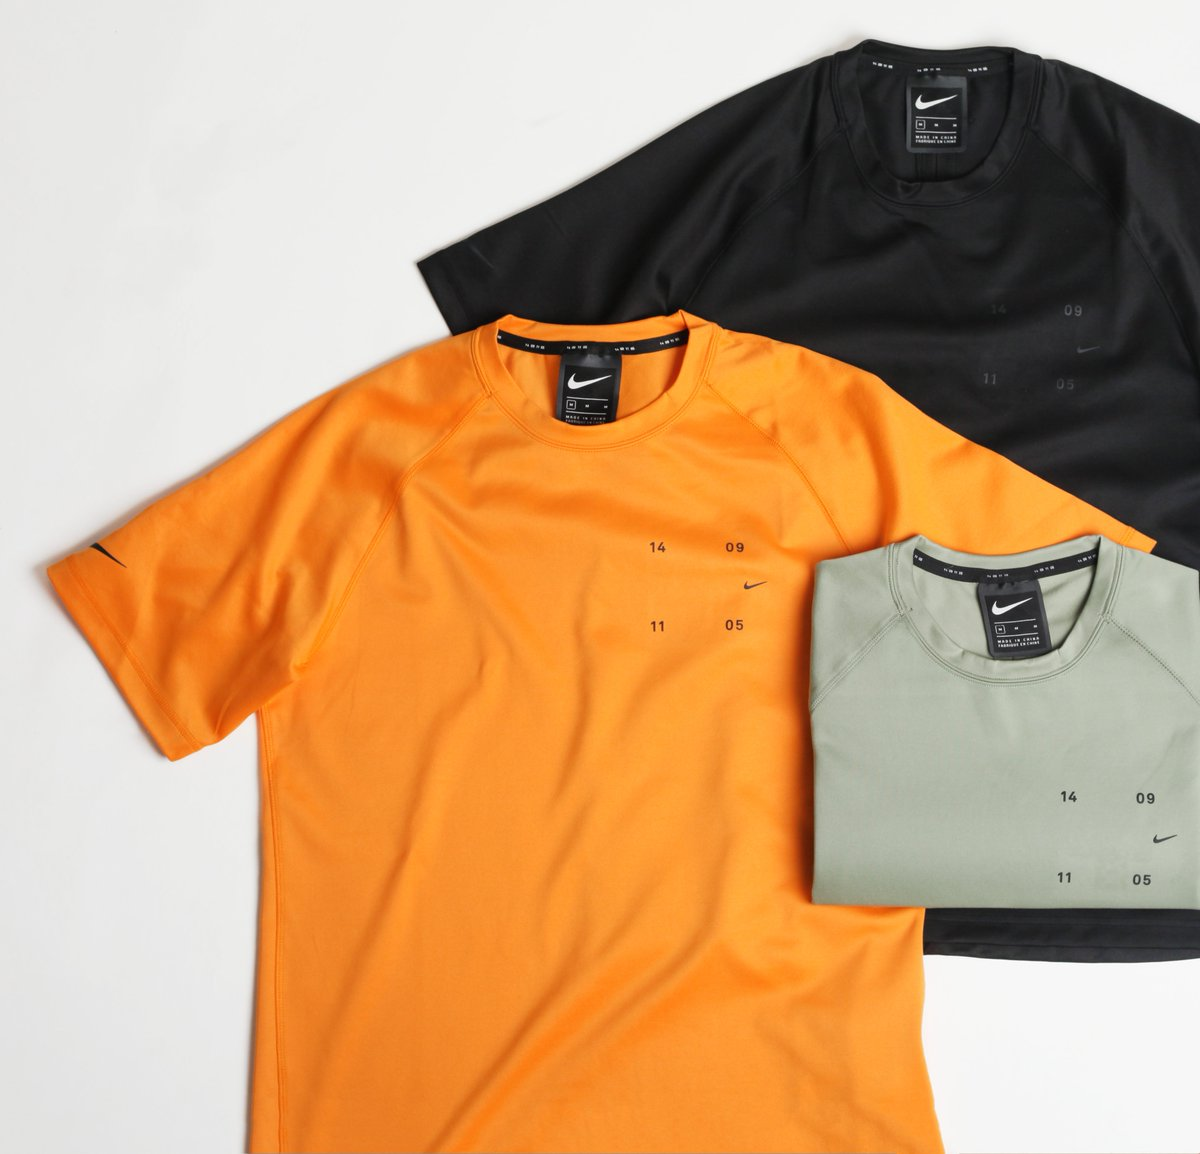 41ce0c16c691 Nike S/S Tech Pack Top in Kumquat, Jade Stone and Black are now ...